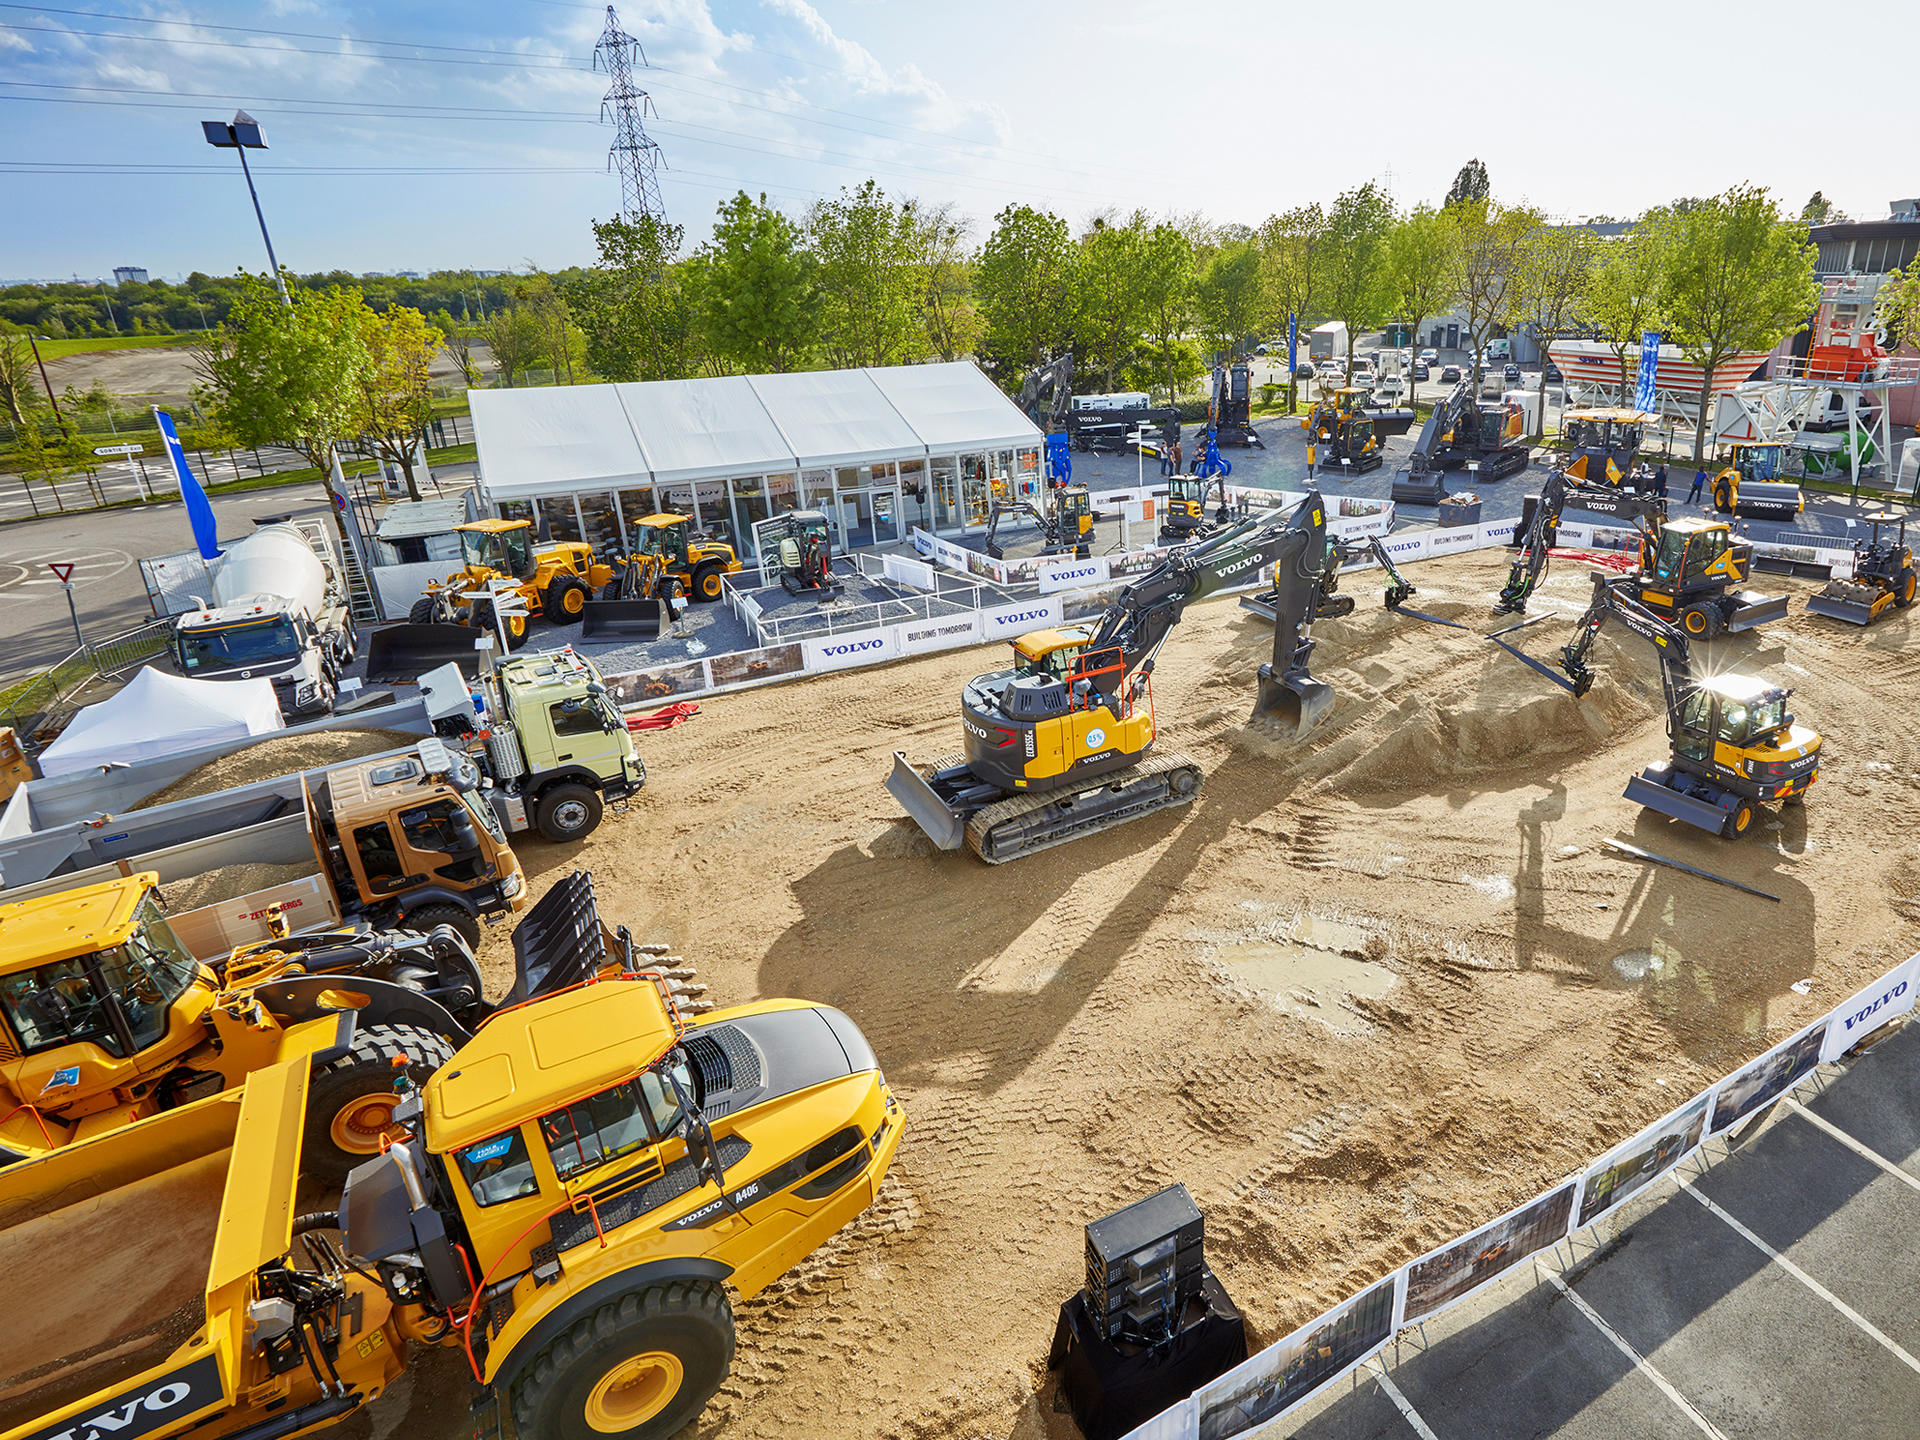 volvo-demonstrates-strong-portfolio-for-customer-success-at-intermat-paris-2018-02-1920